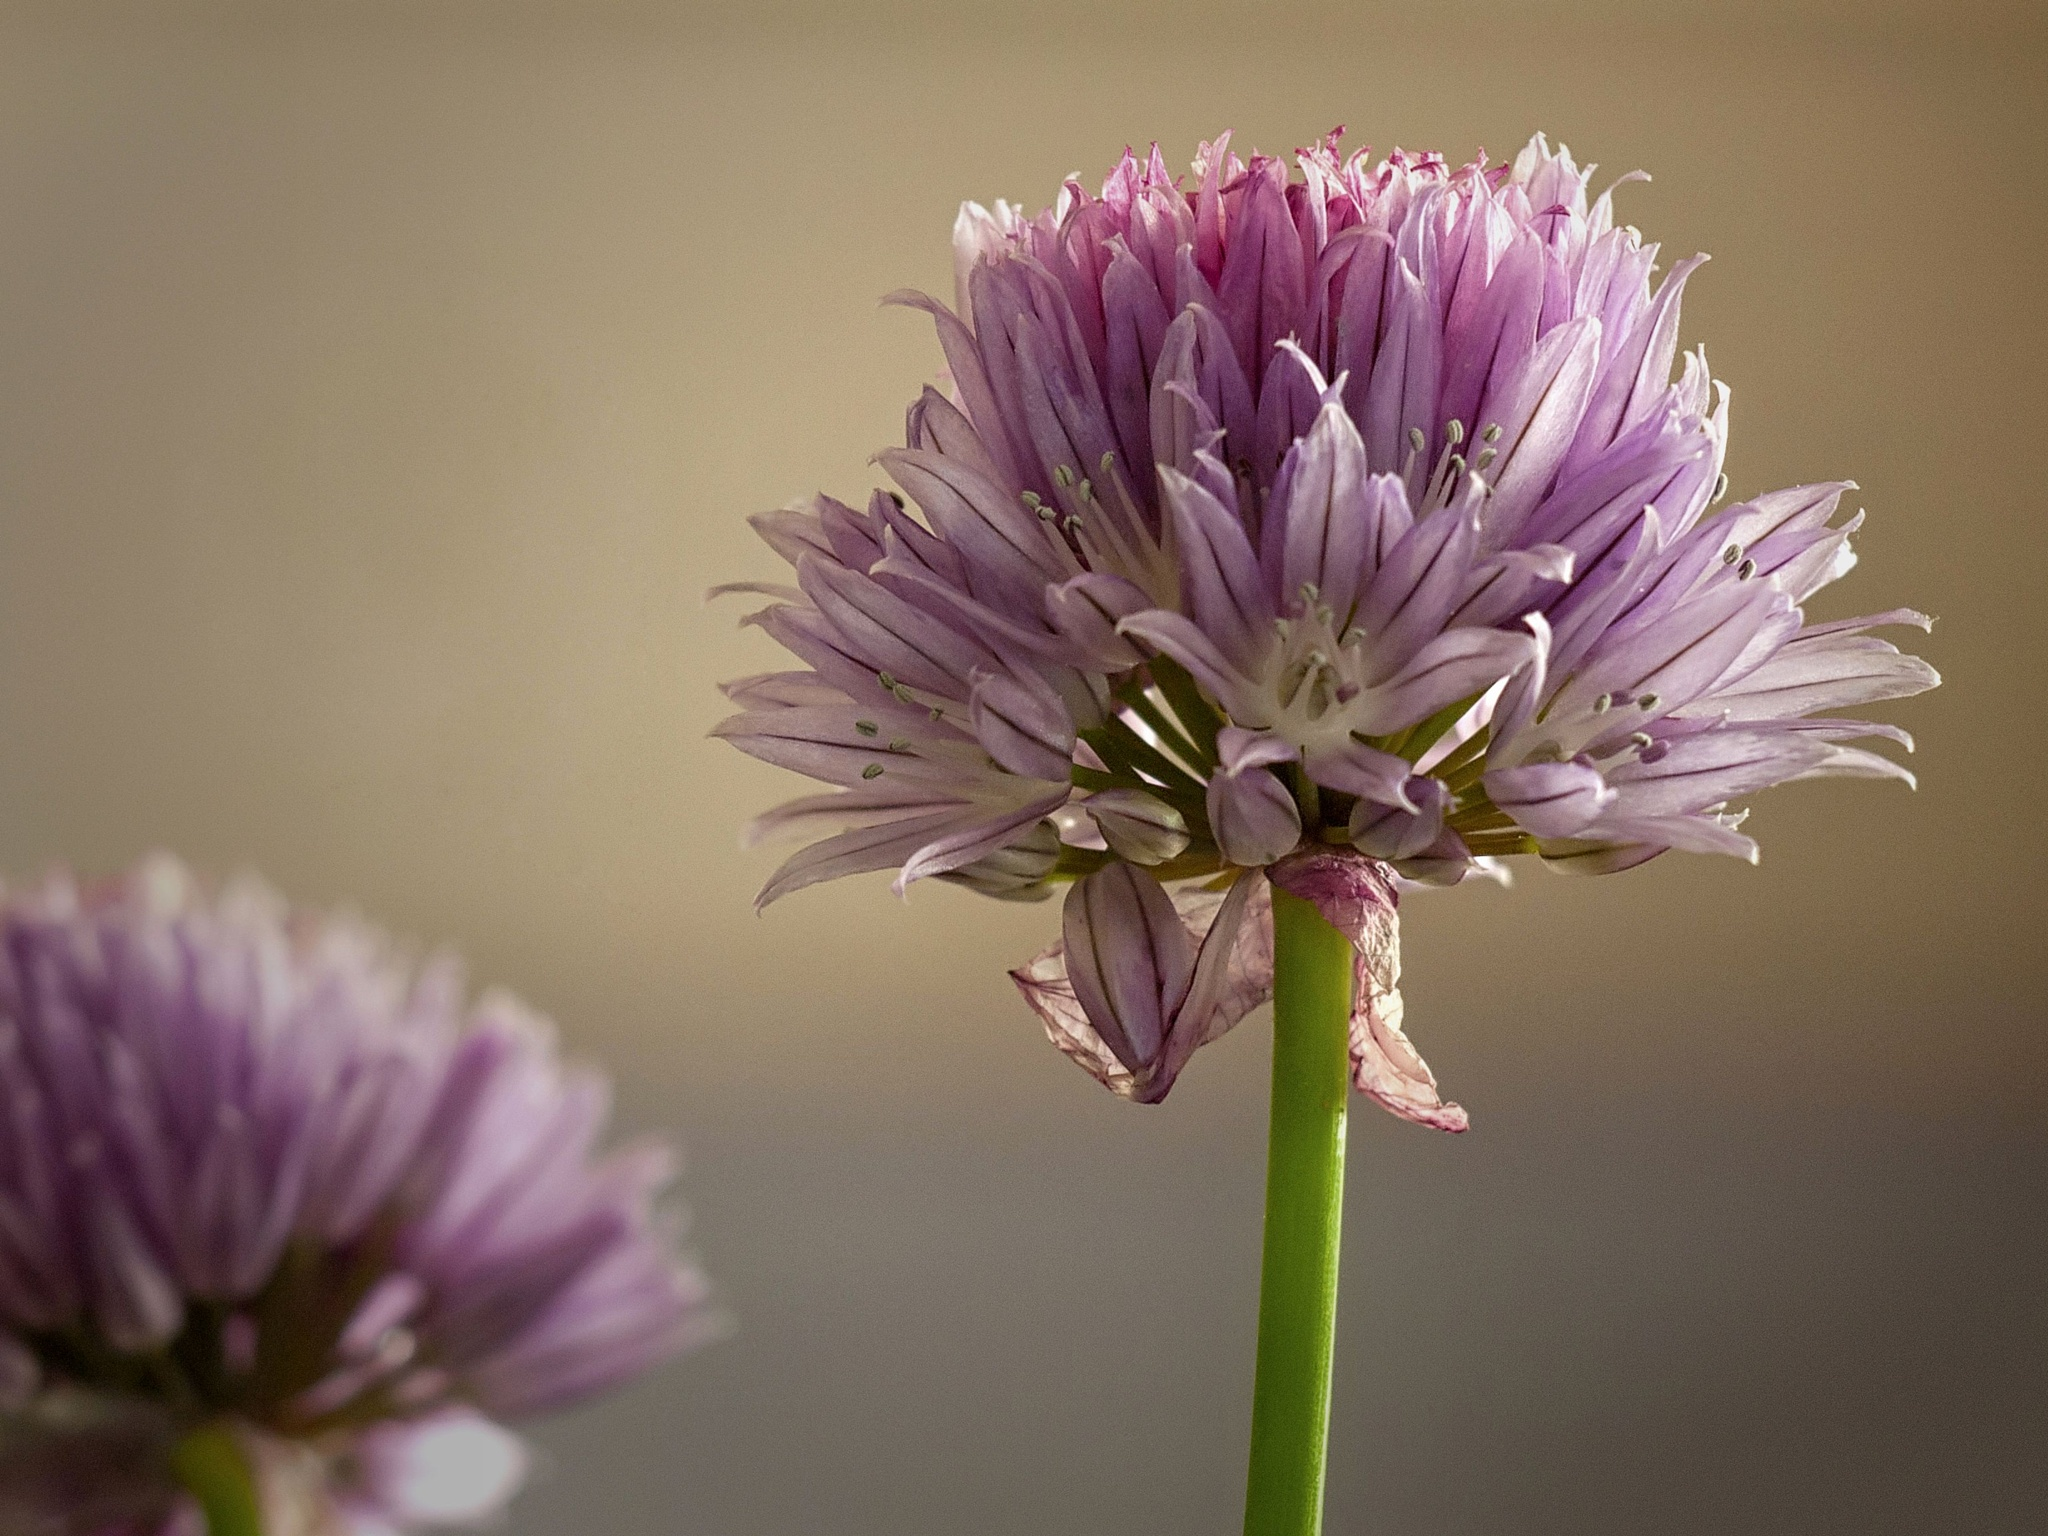 Chives by malco555